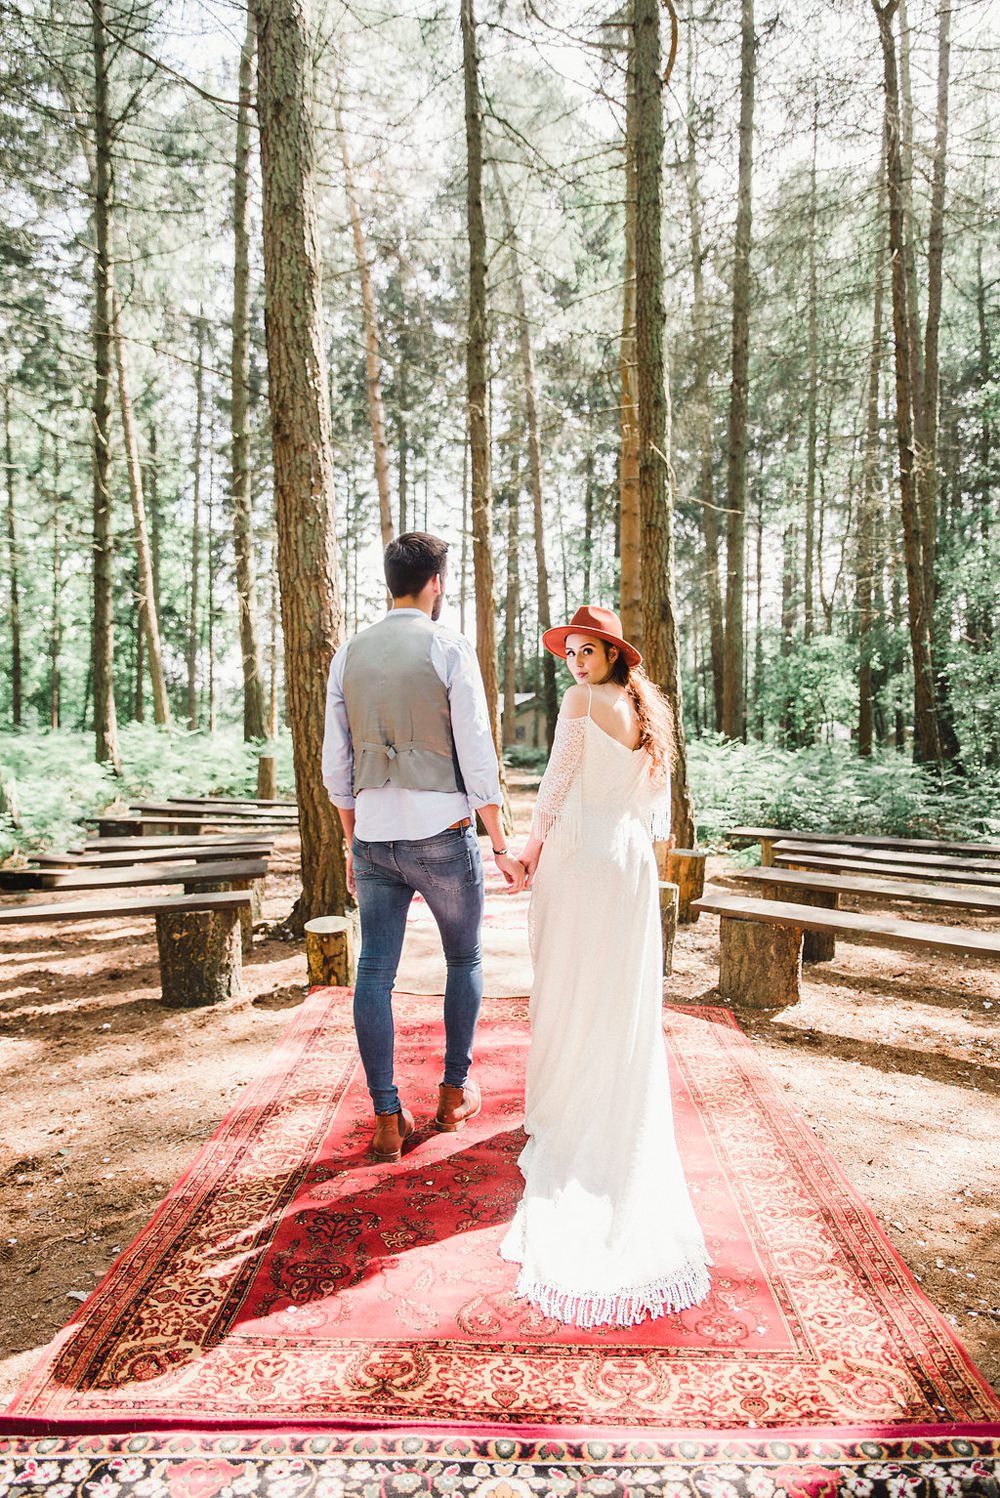 Persian Rug Outdoor Aisle Ceremony Fedora Hat Accessory Bride Bridal Gown Dress Fringed Tassel Bohemian Sleeves Train Boho Woodland Wedding Ideas Camp Katur Emily Olivia Photography